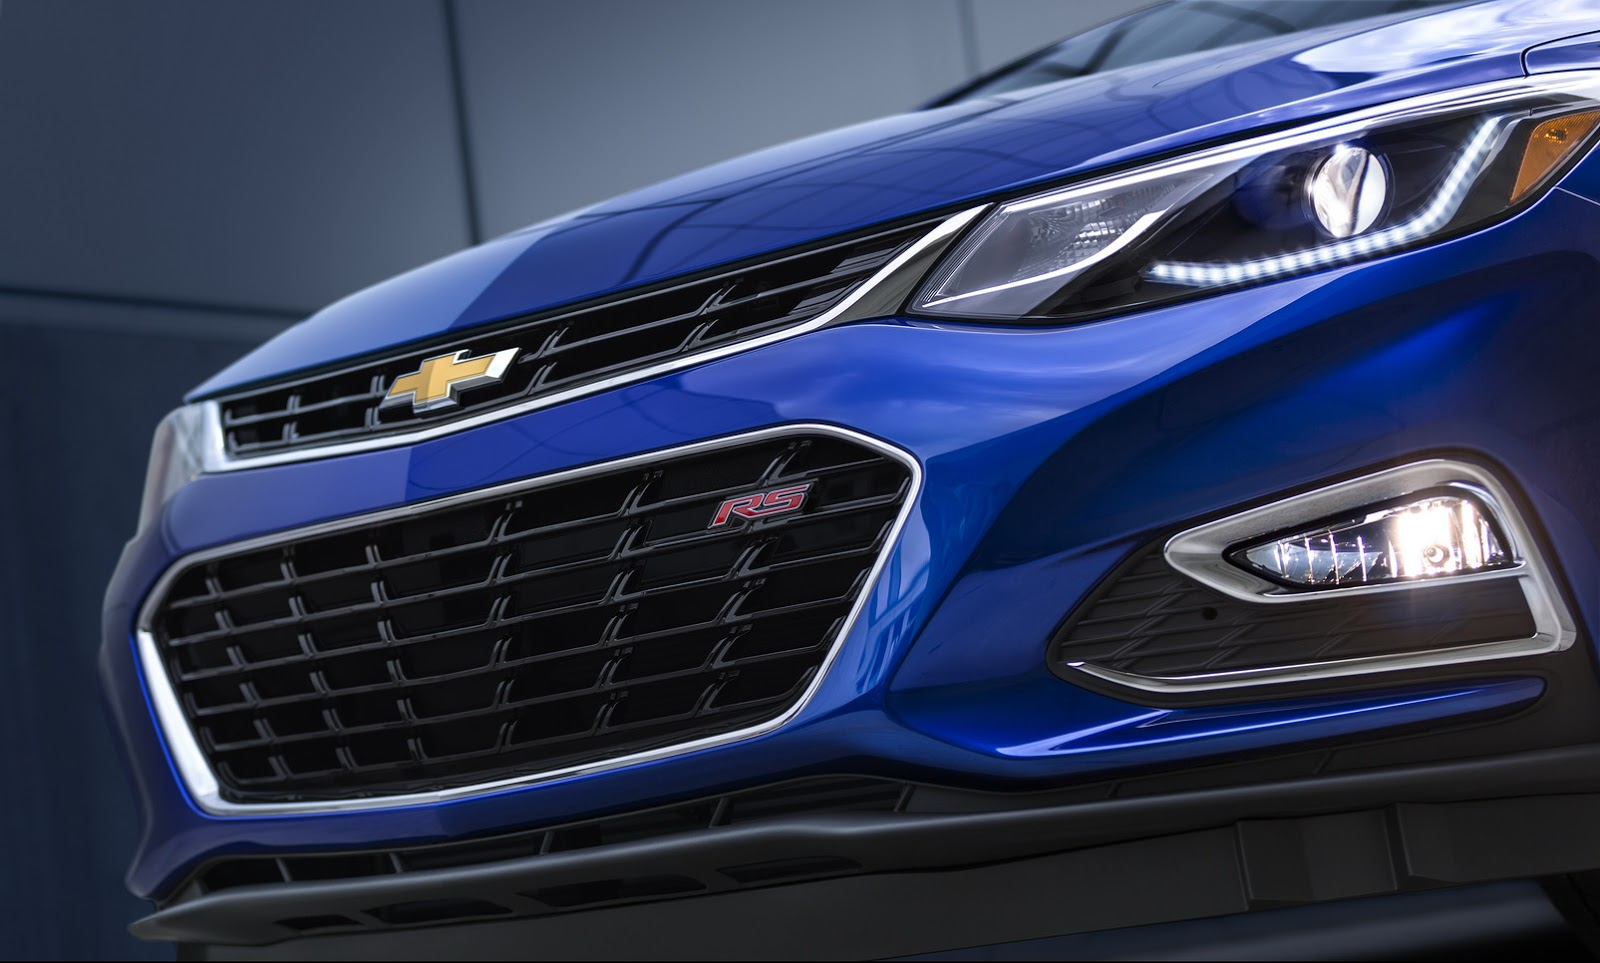 2016 Chevrolet Cruze grille and headlamp official image